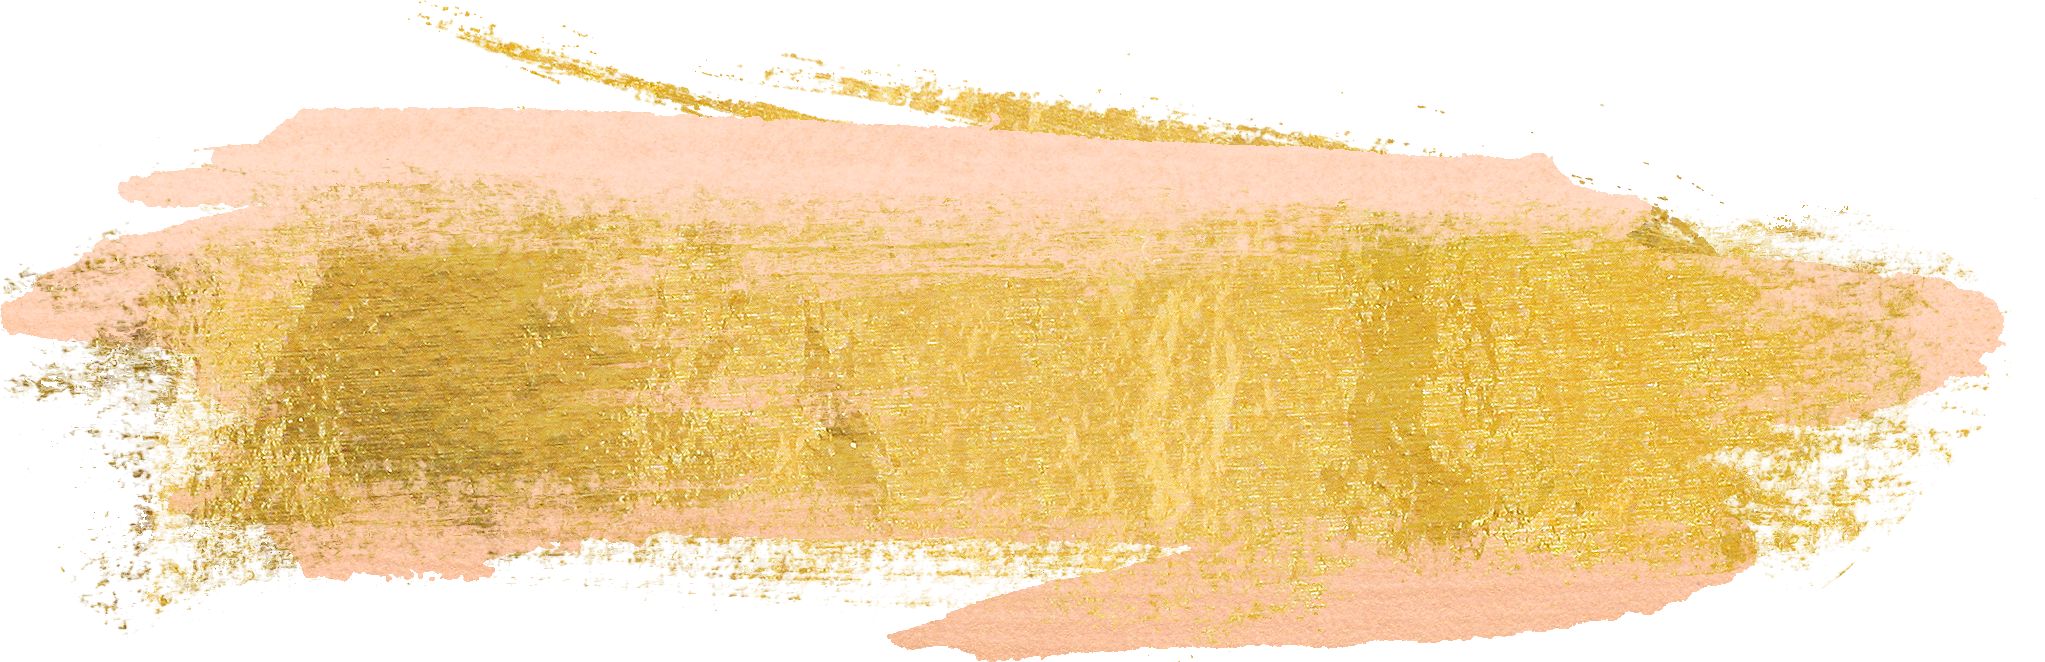 Gold brush stroke png. Free paint strokes cu